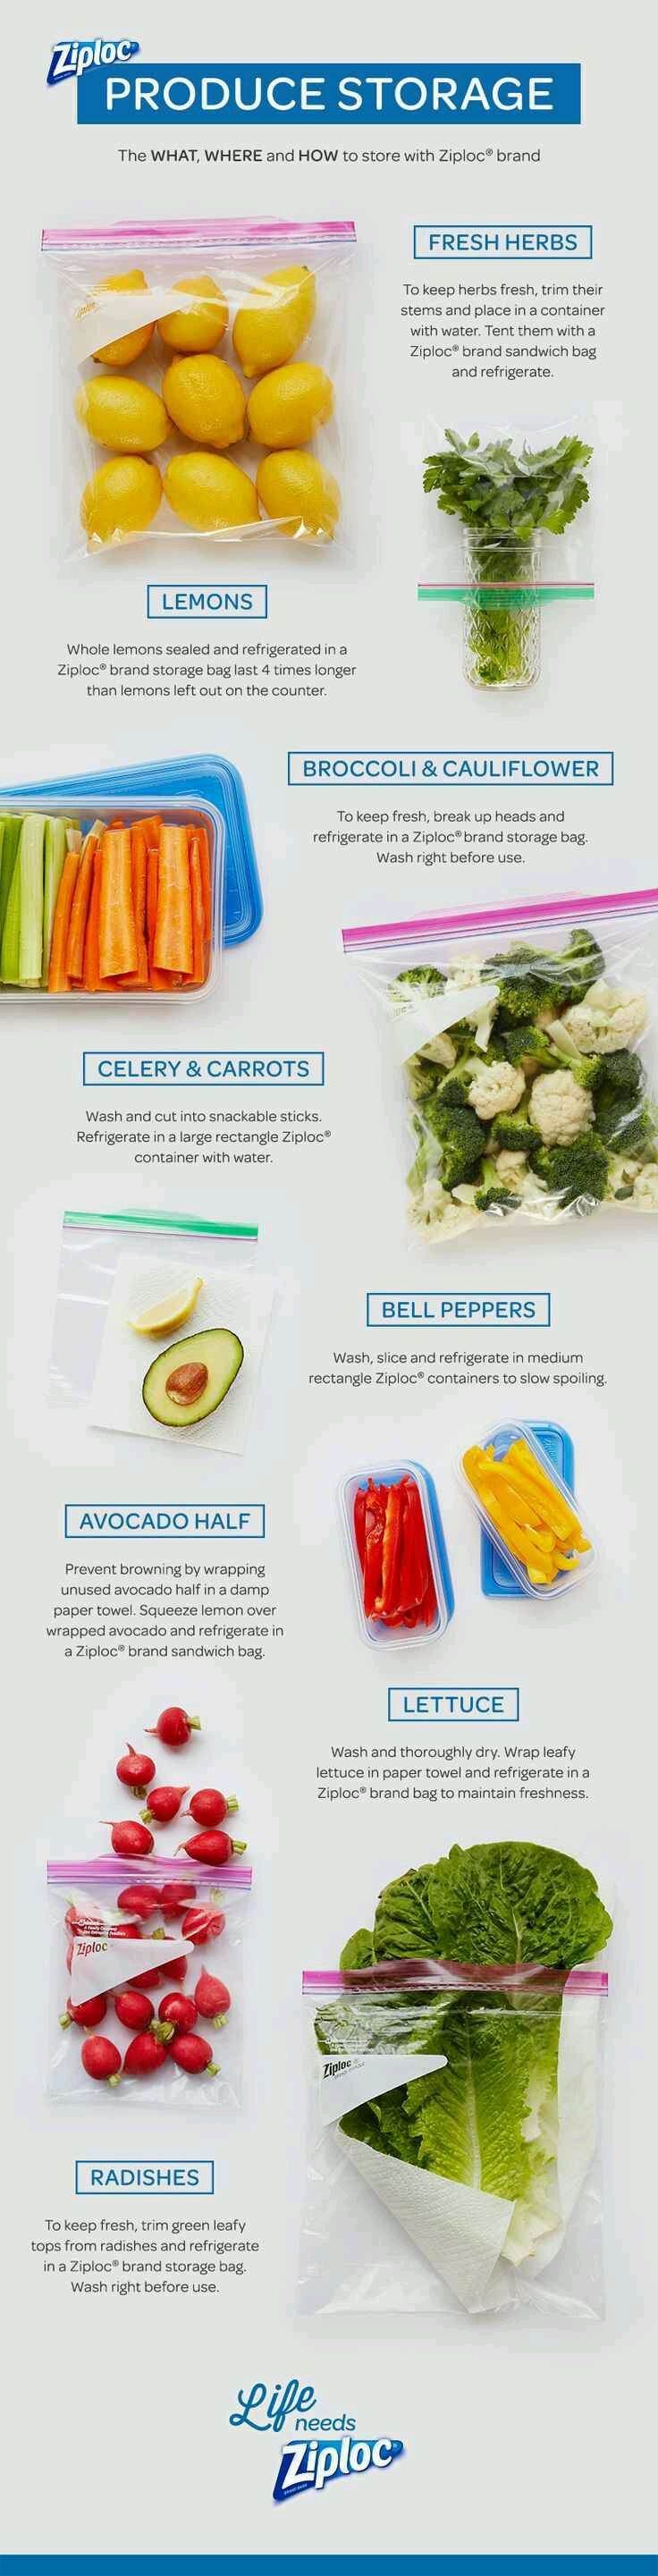 Tuesday S Tips Save Money With These Produce Storage Tips